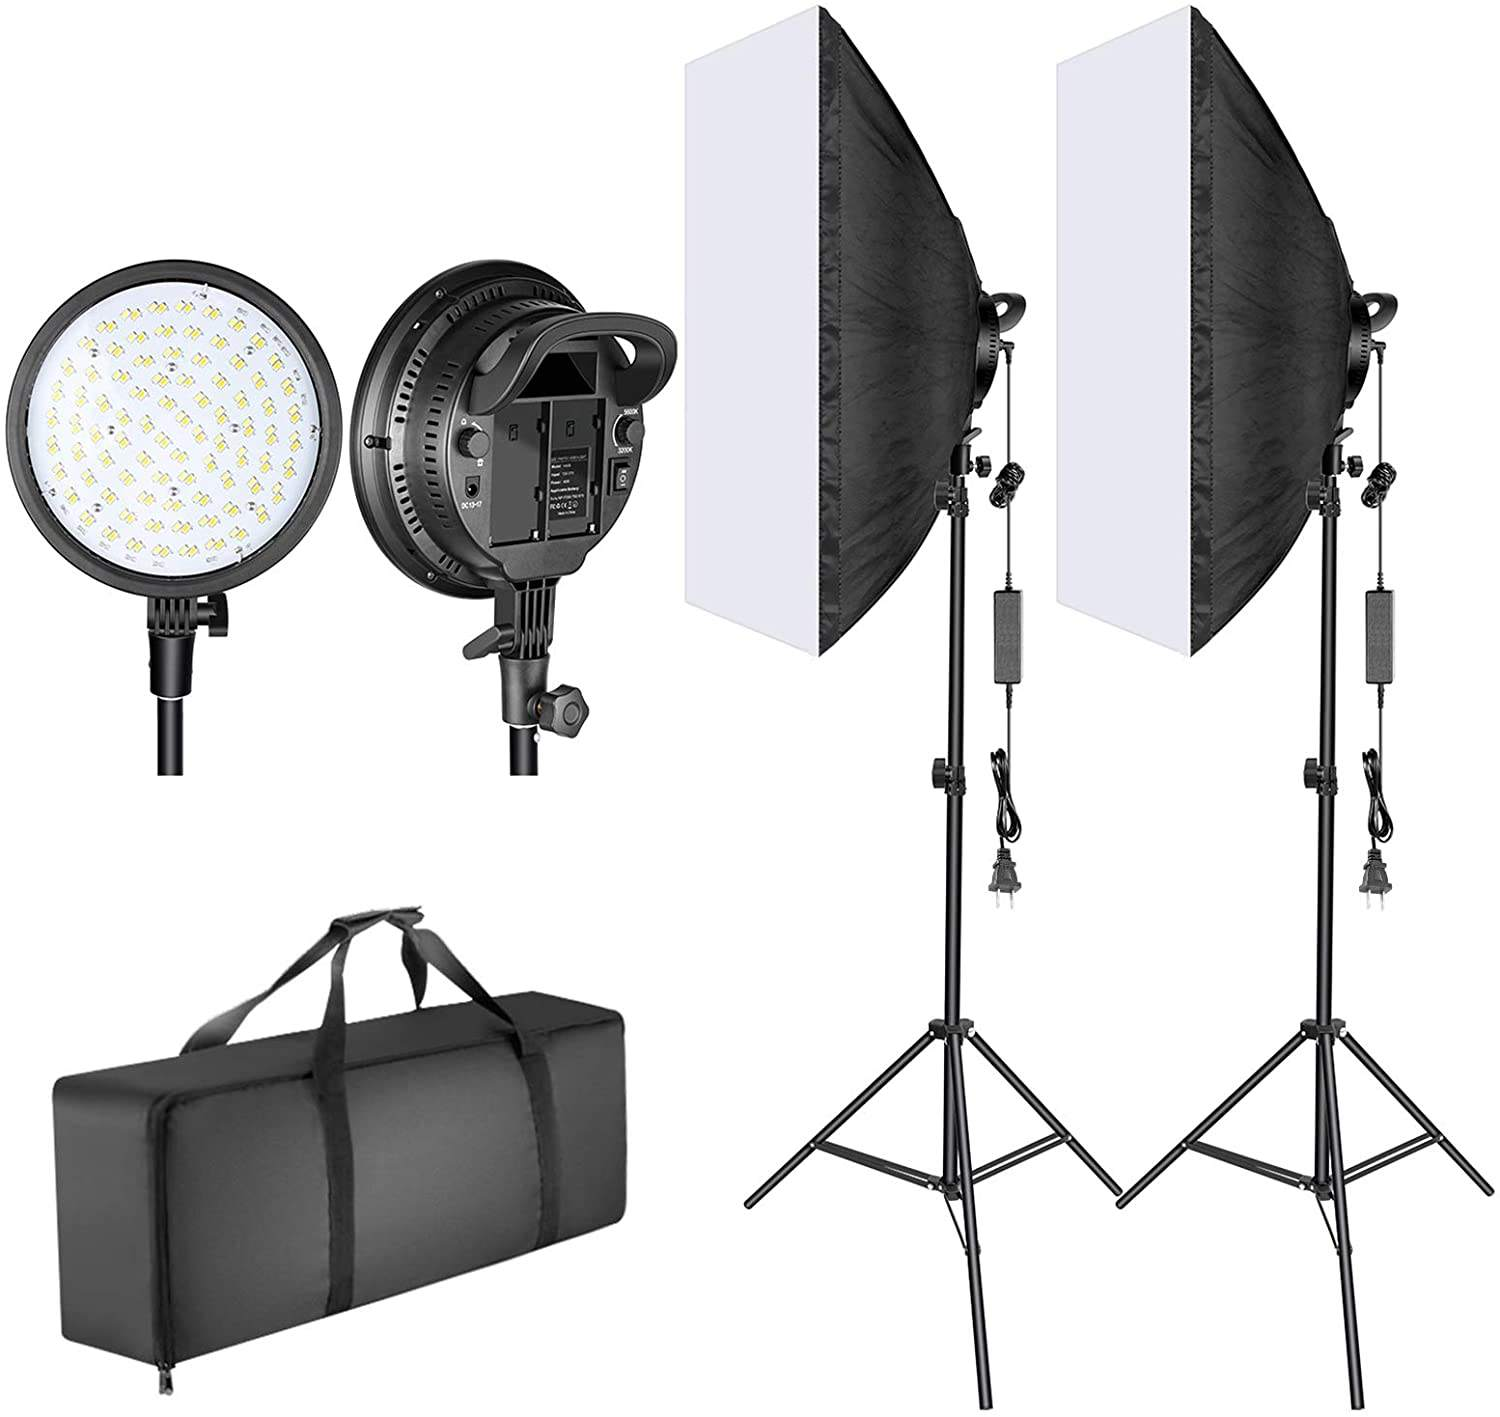 Neewer Led Softbox Verlichting Kit 20X28 Inch Softbox 48W Dimbare 2 Kleur Temperatuur Led Licht Hoofd Batterij